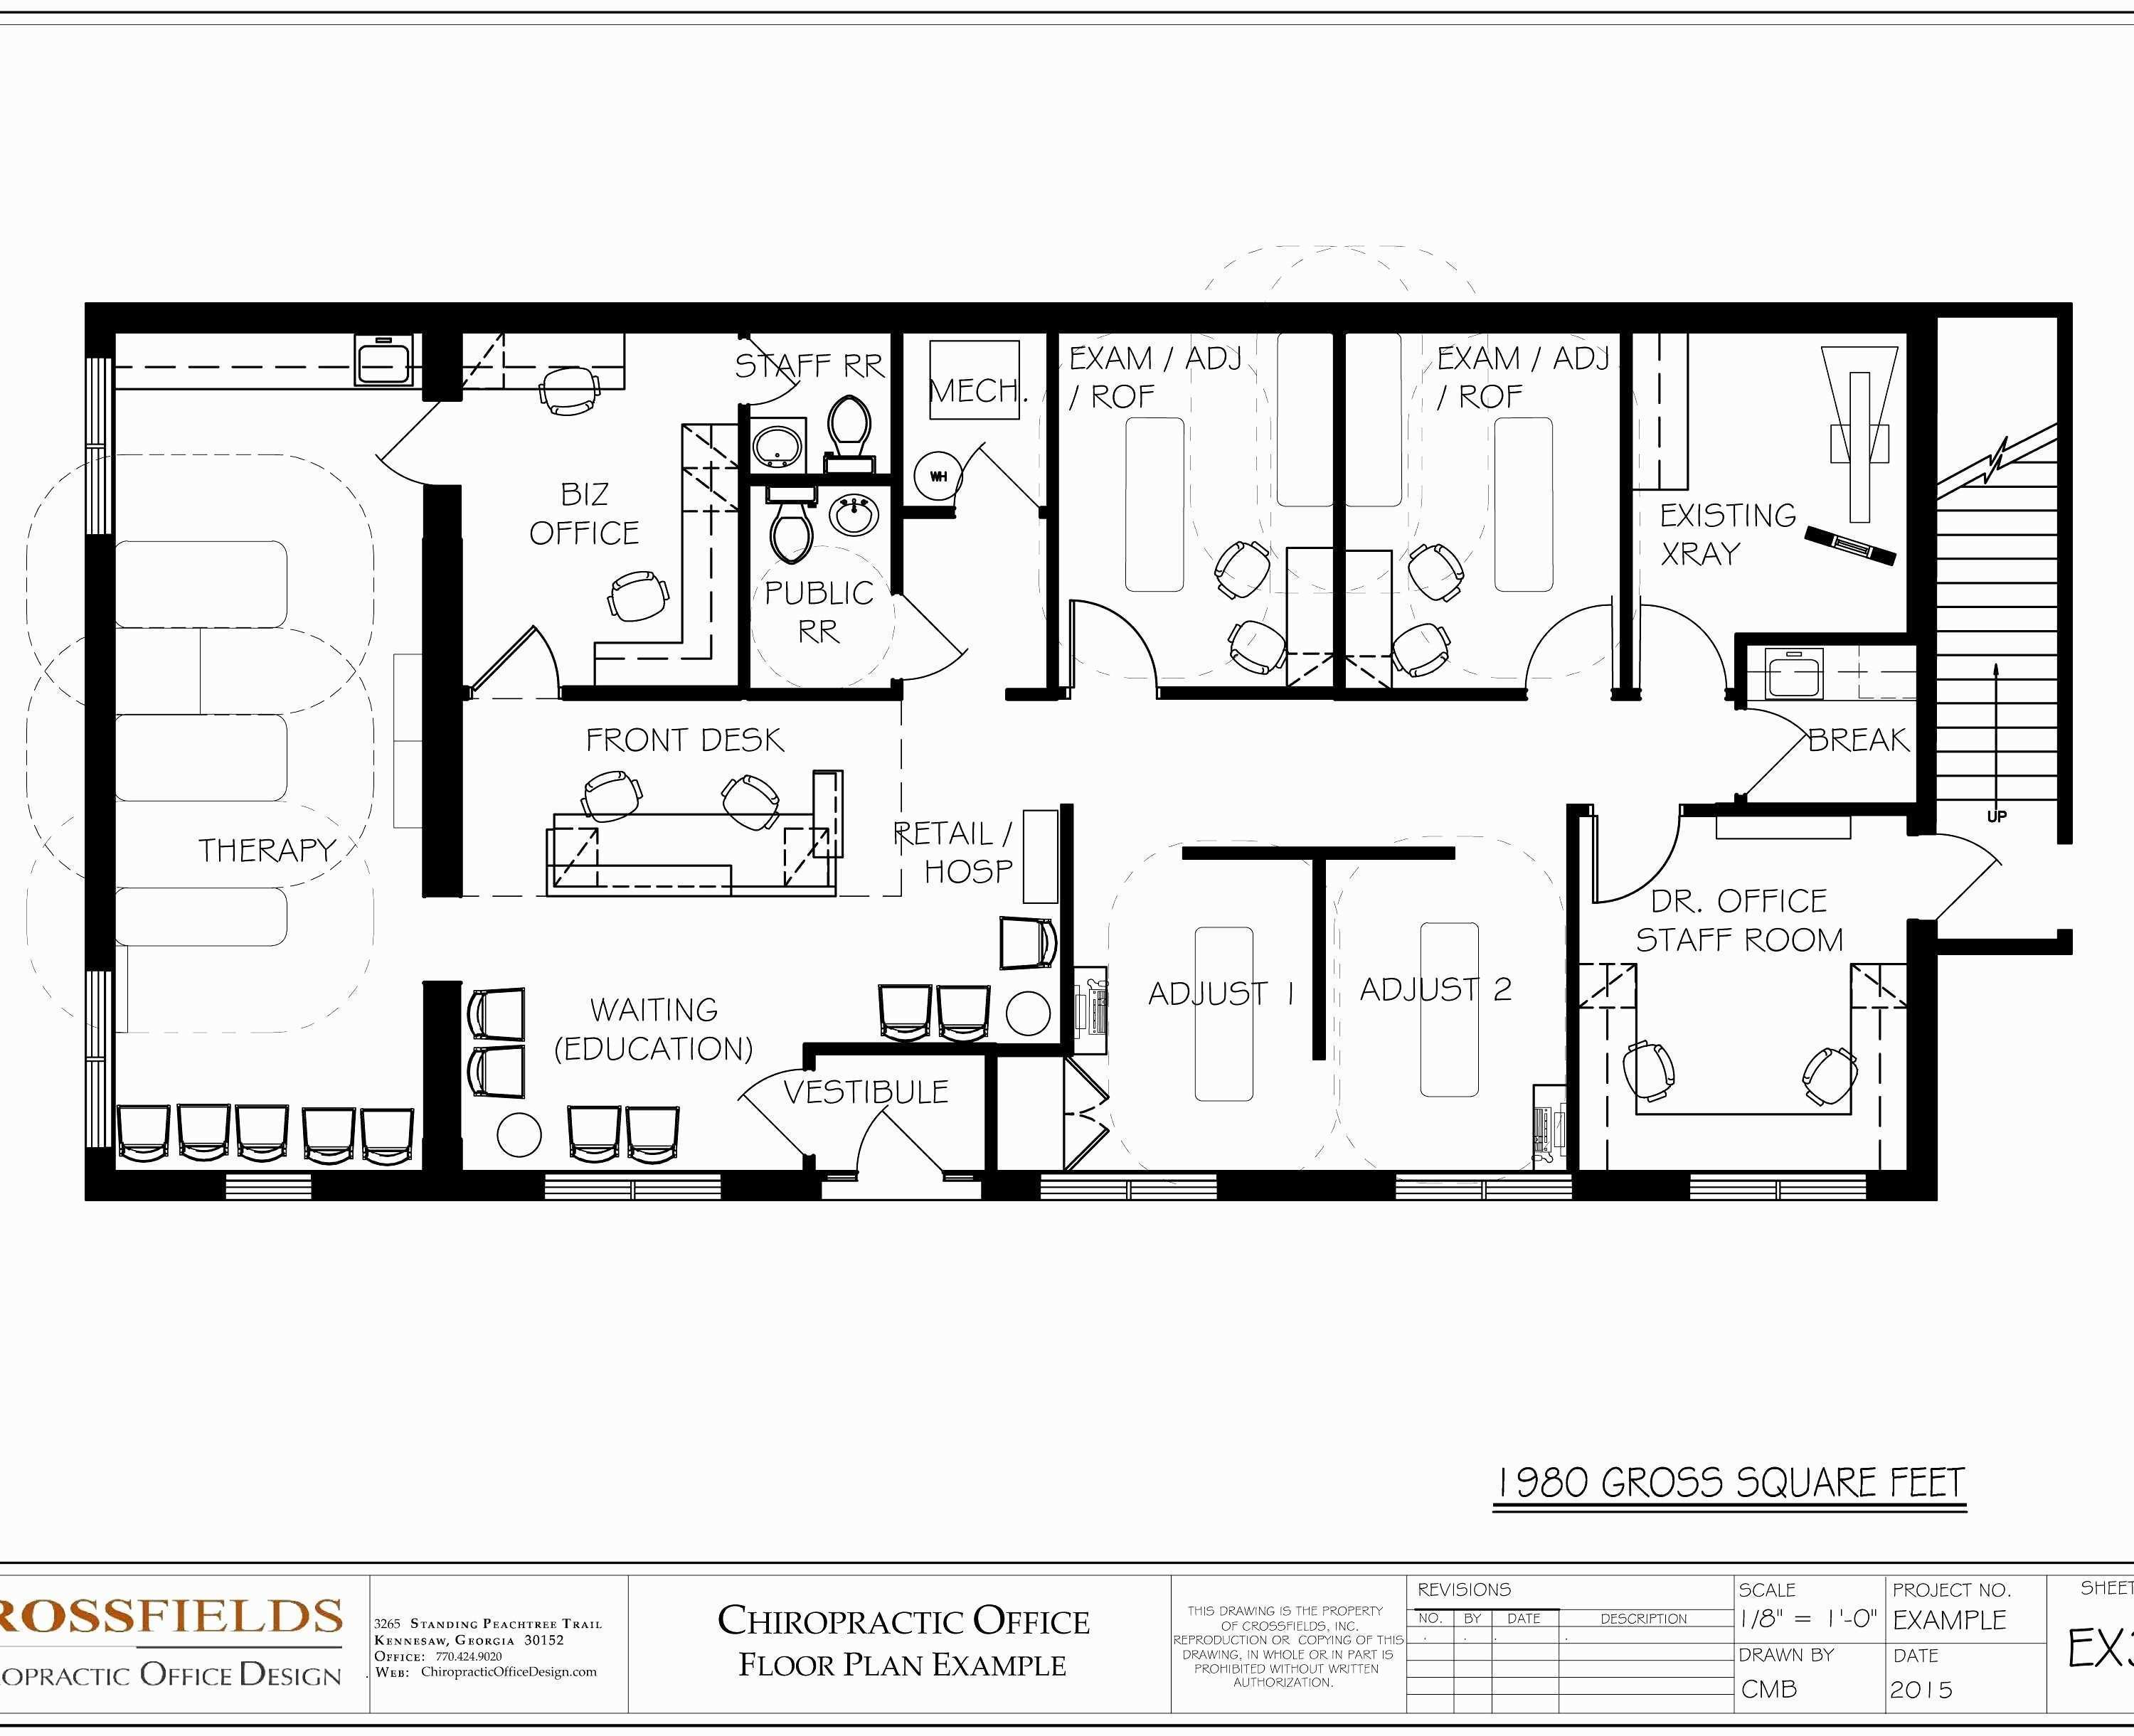 24 X 30 House Floor Plans Luxury Sketch Plan for 3 Bedroom House 26